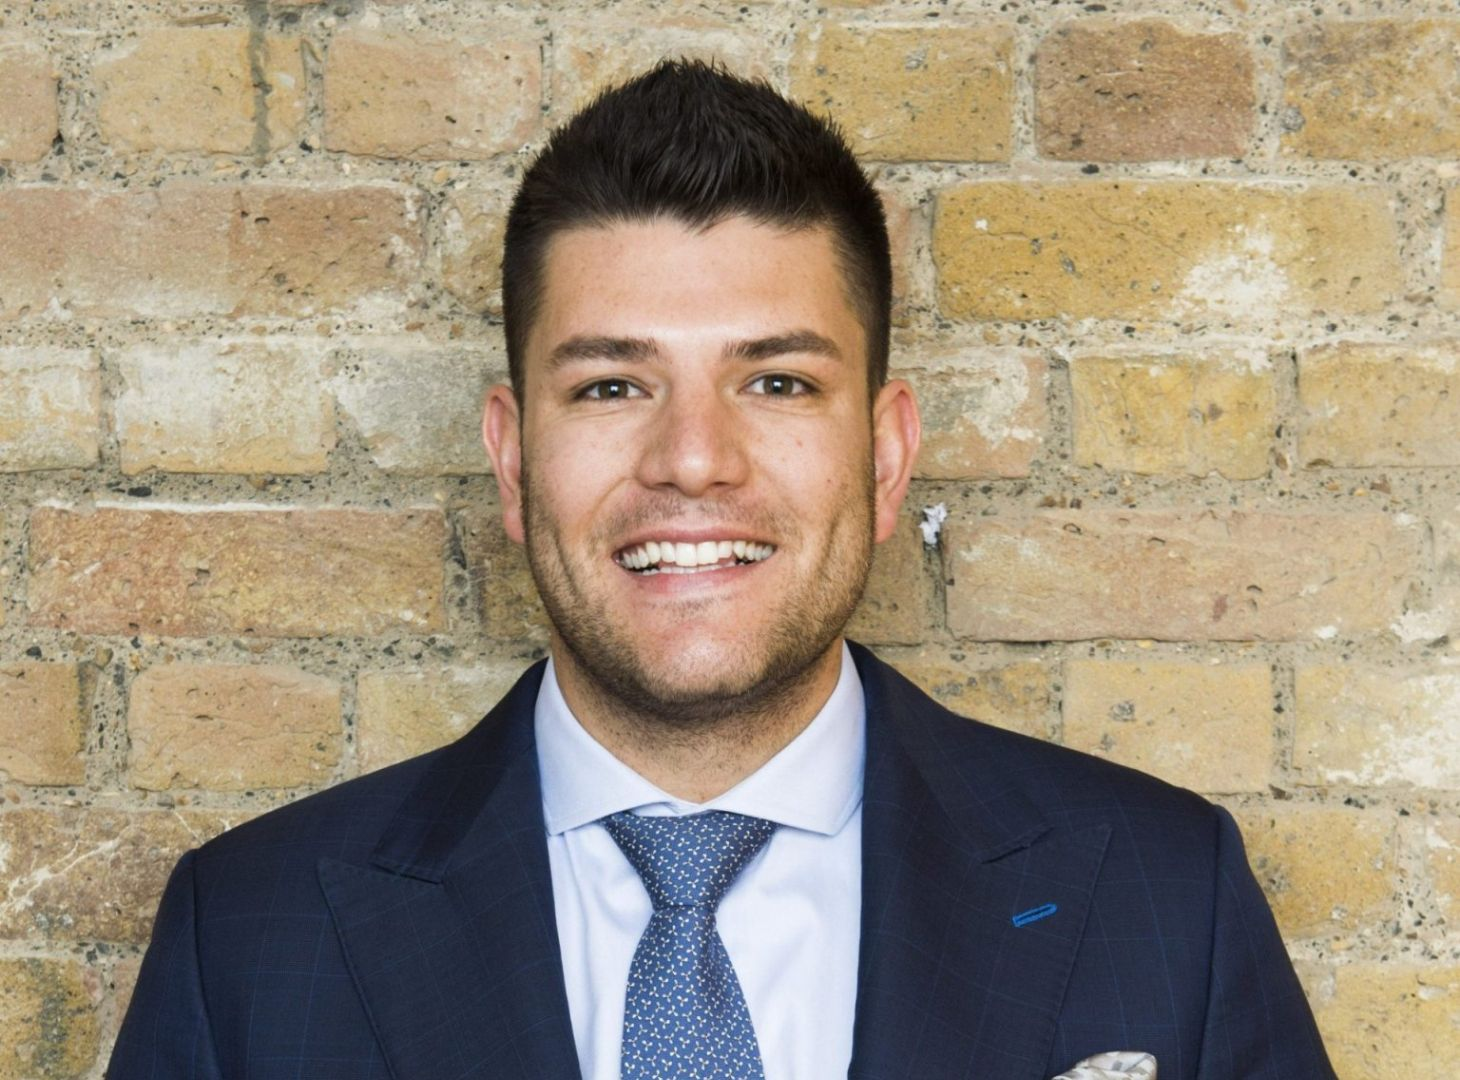 Image of Mark Wright, Winner of the apprentice 2014